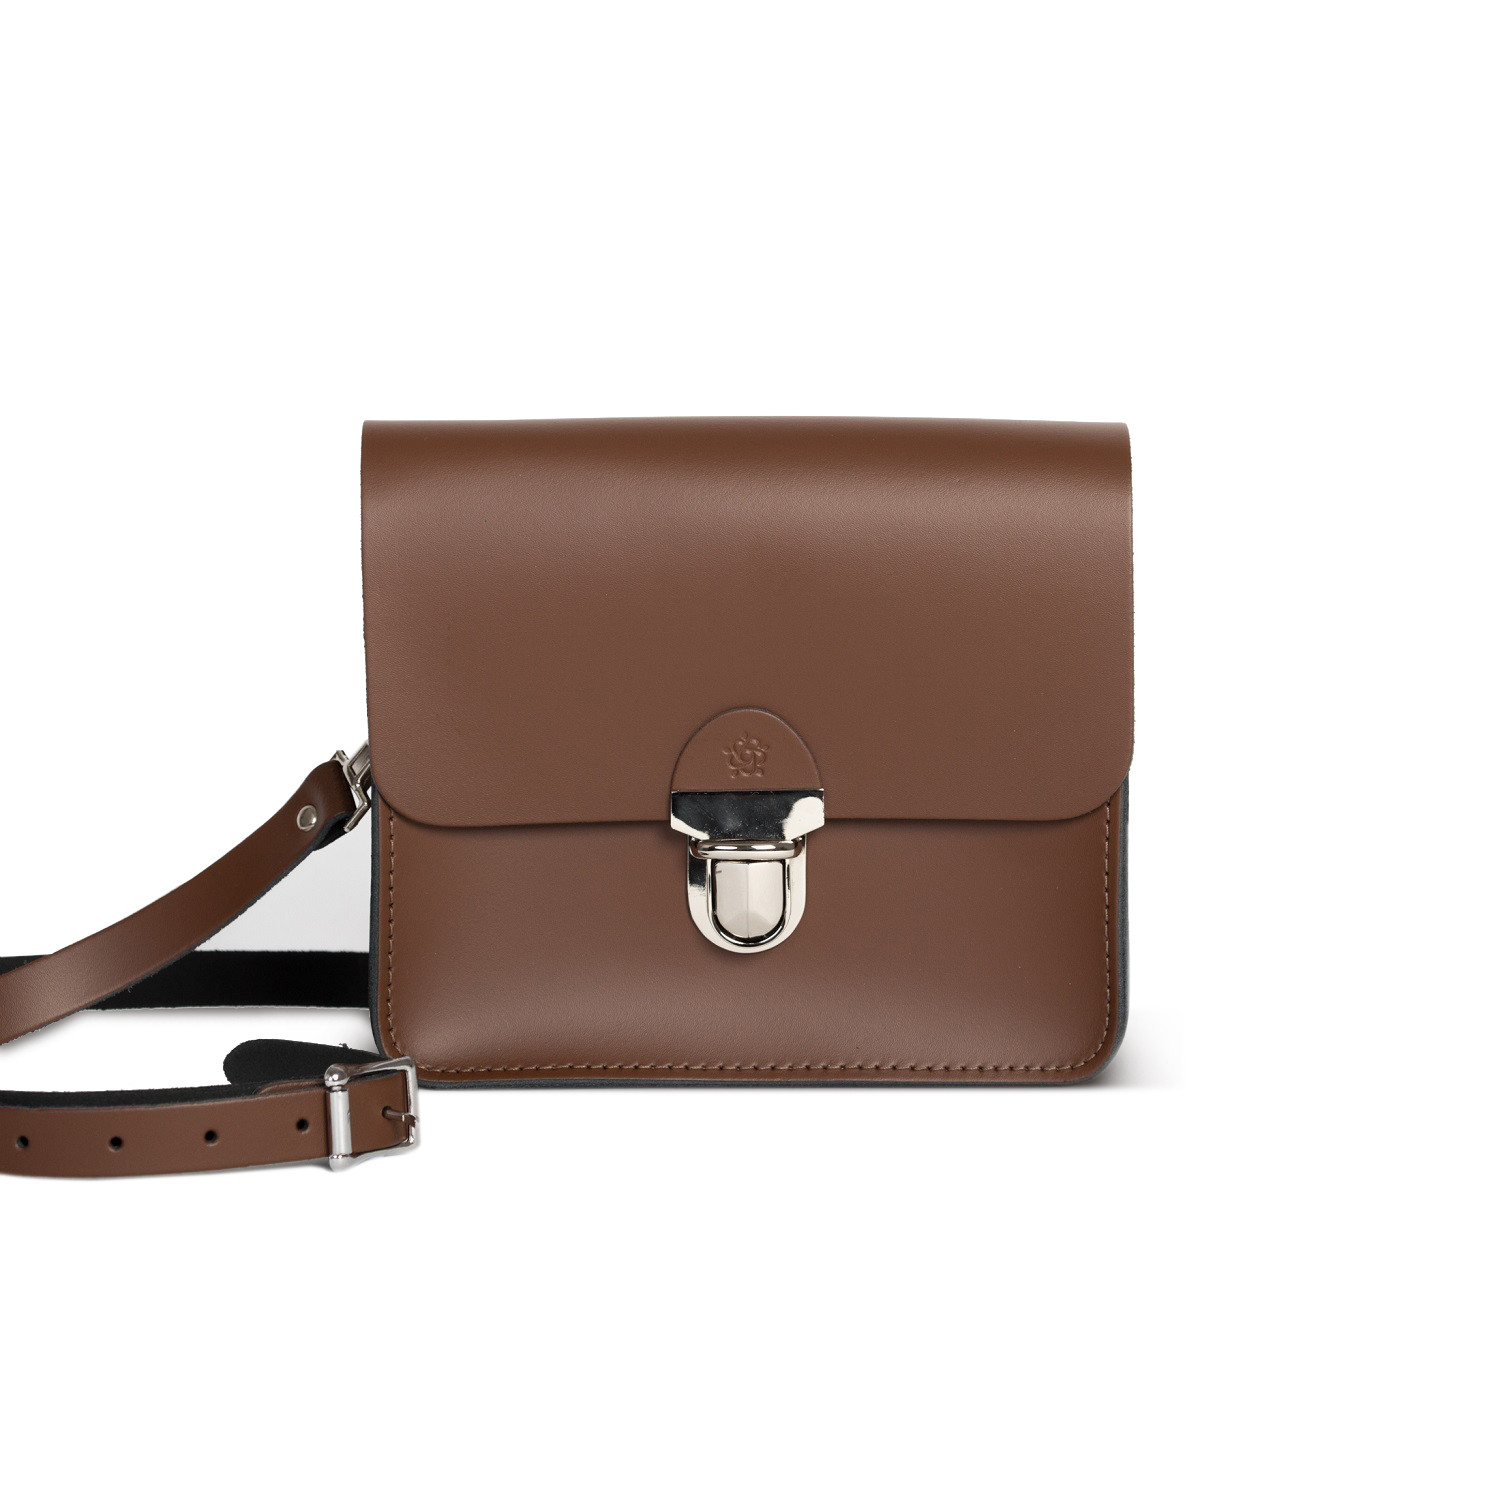 Sofia Premium Leather Crossbody Bag in Dark Brown